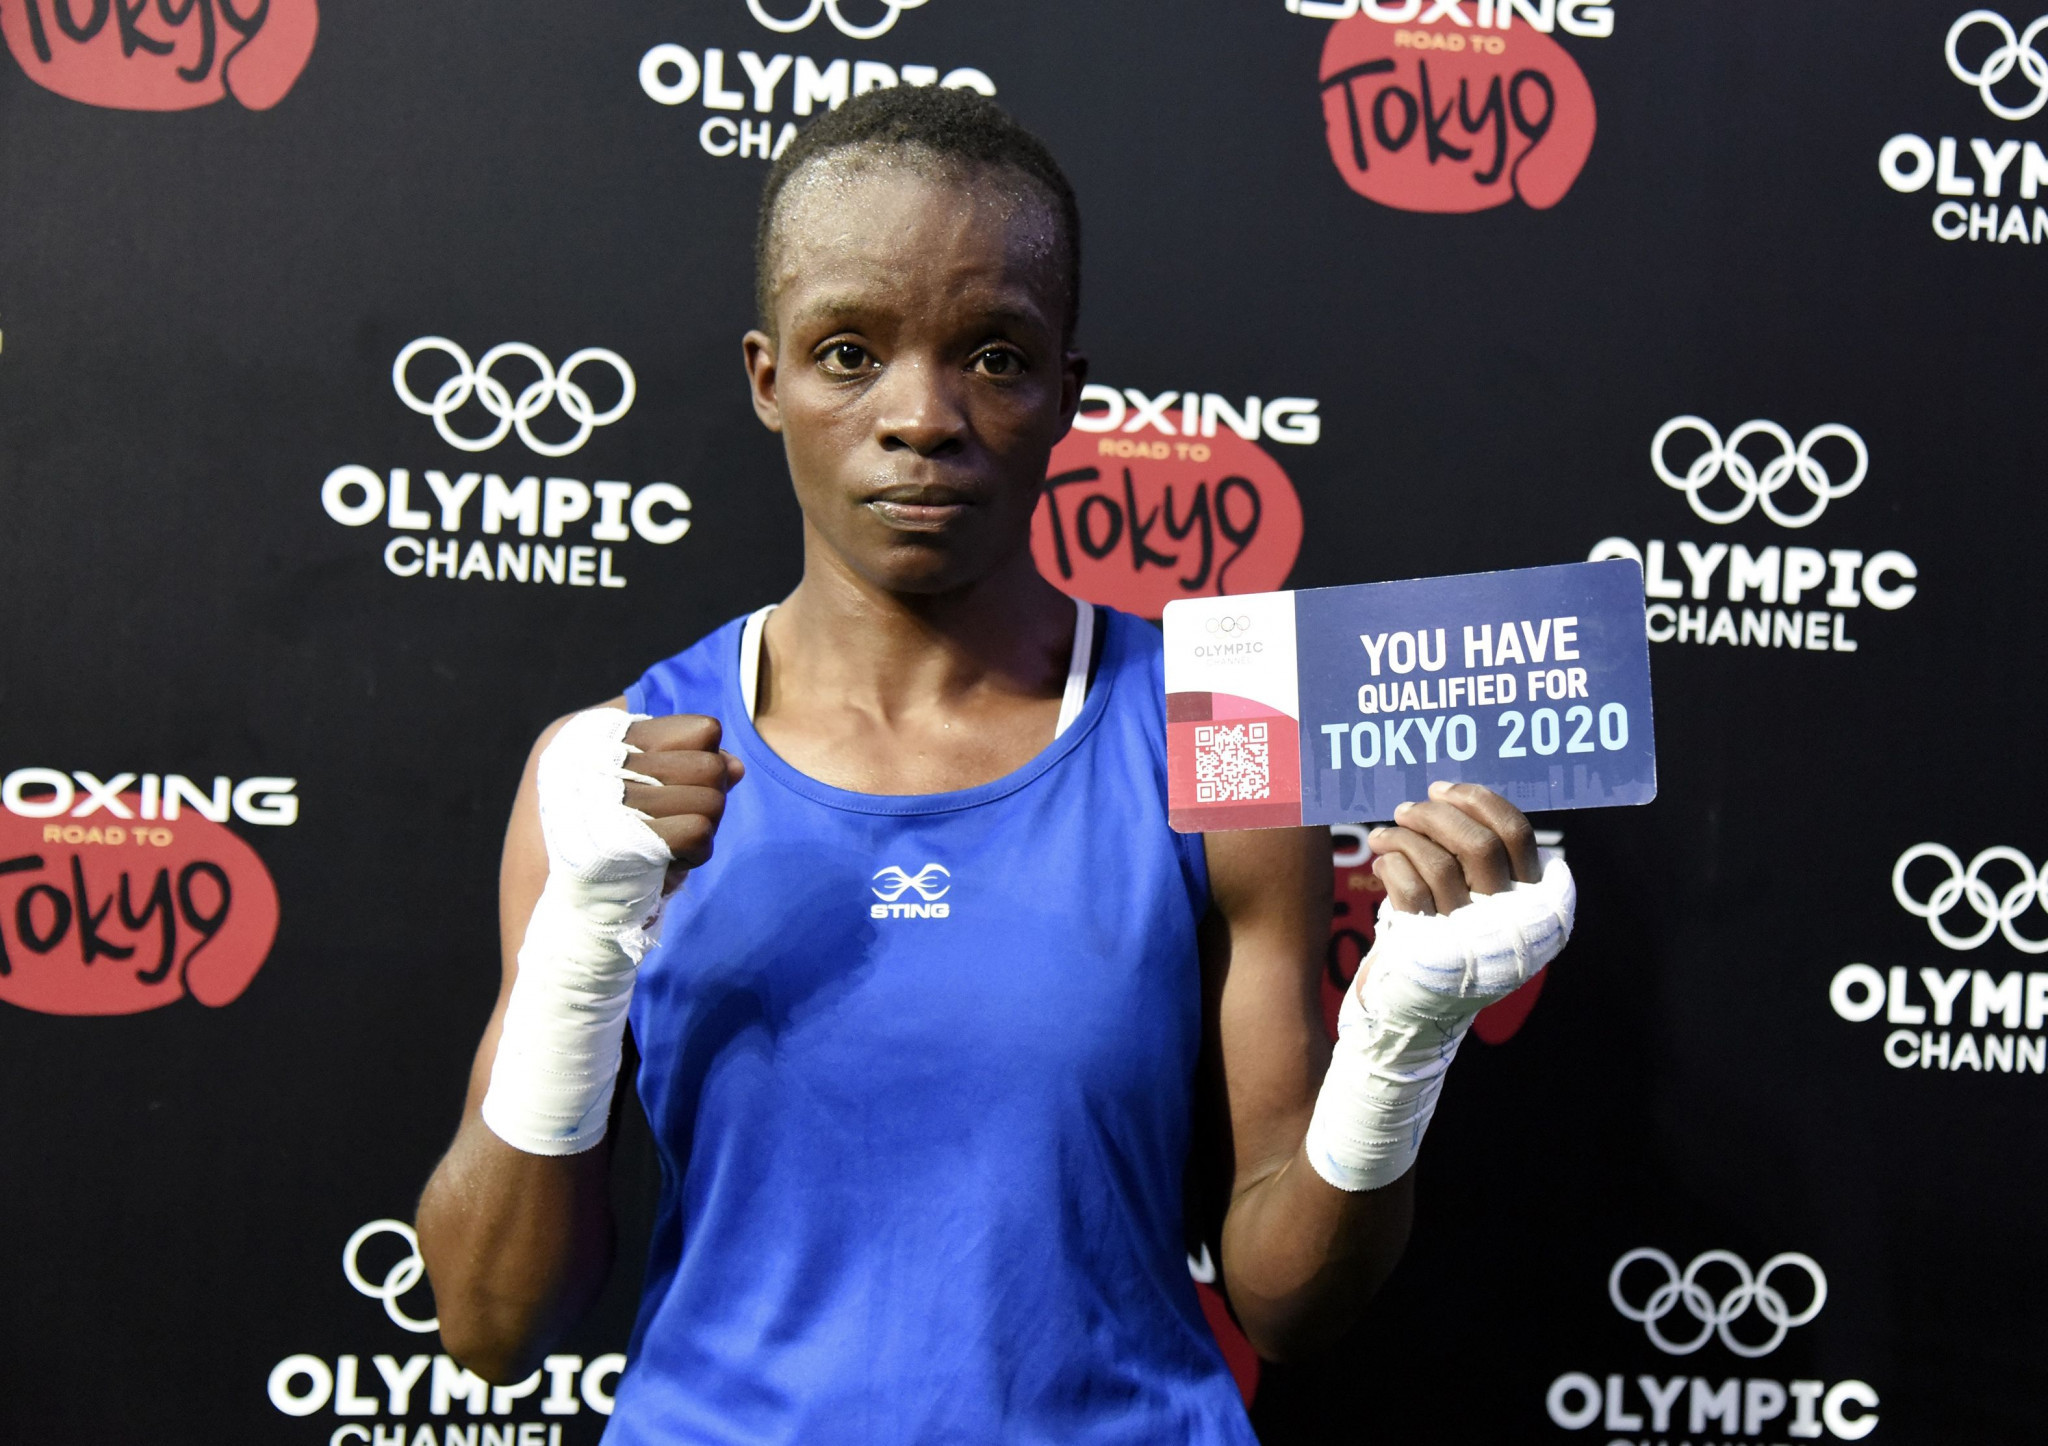 Kenyan boxing coach thanks NOC for support on road to Tokyo 2020